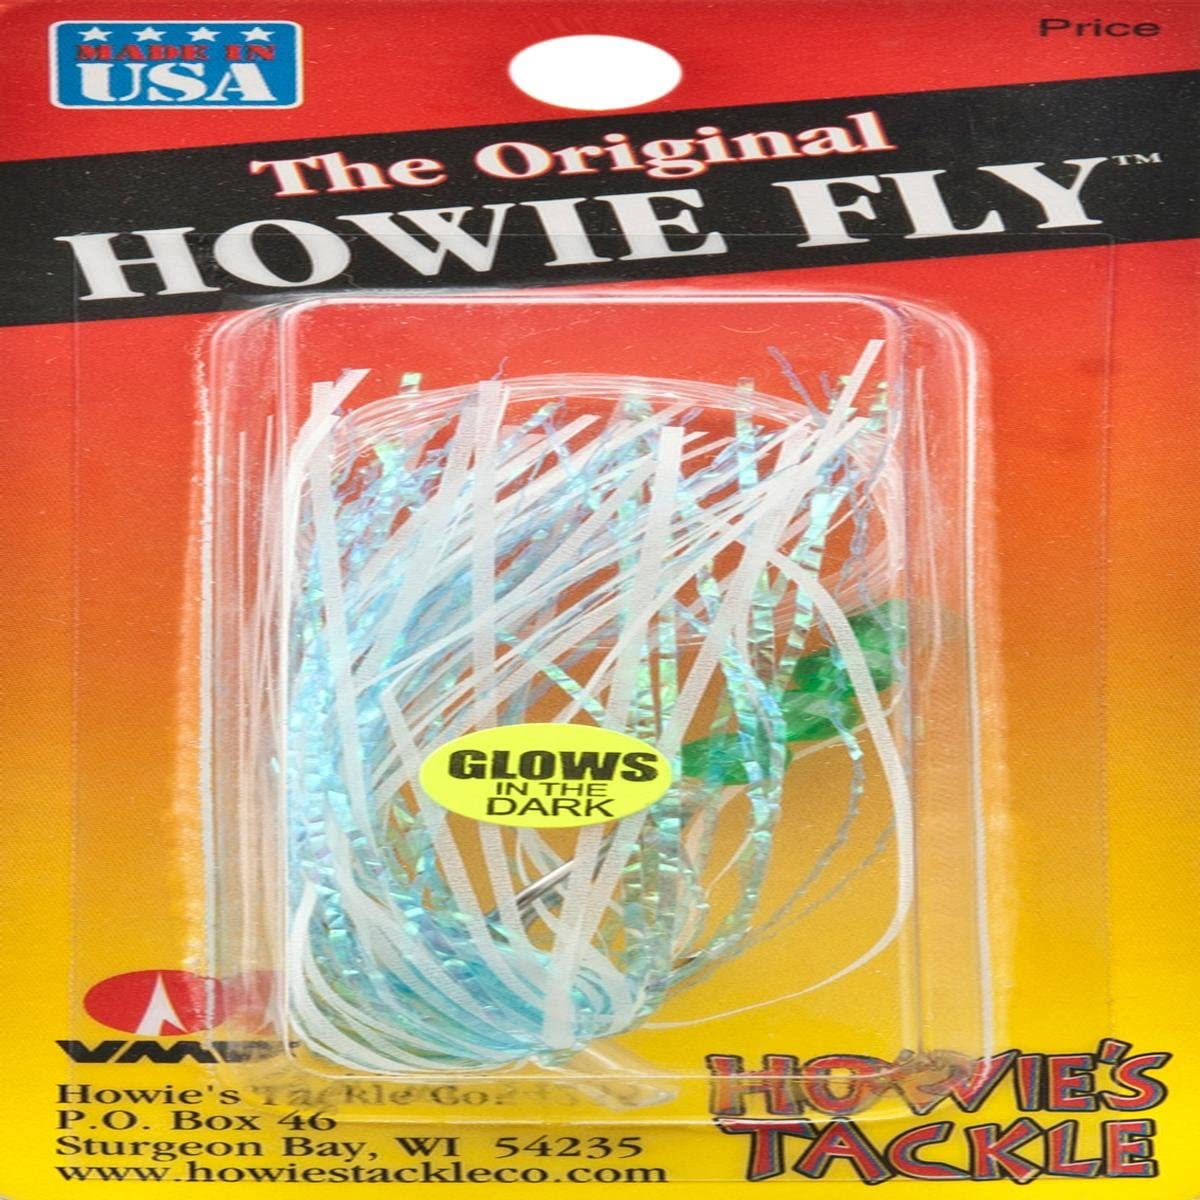 Howies Tackle Howie's Howie Fly Powder Fishing Super Special SALE held Glow Blue Lure 4 years warranty